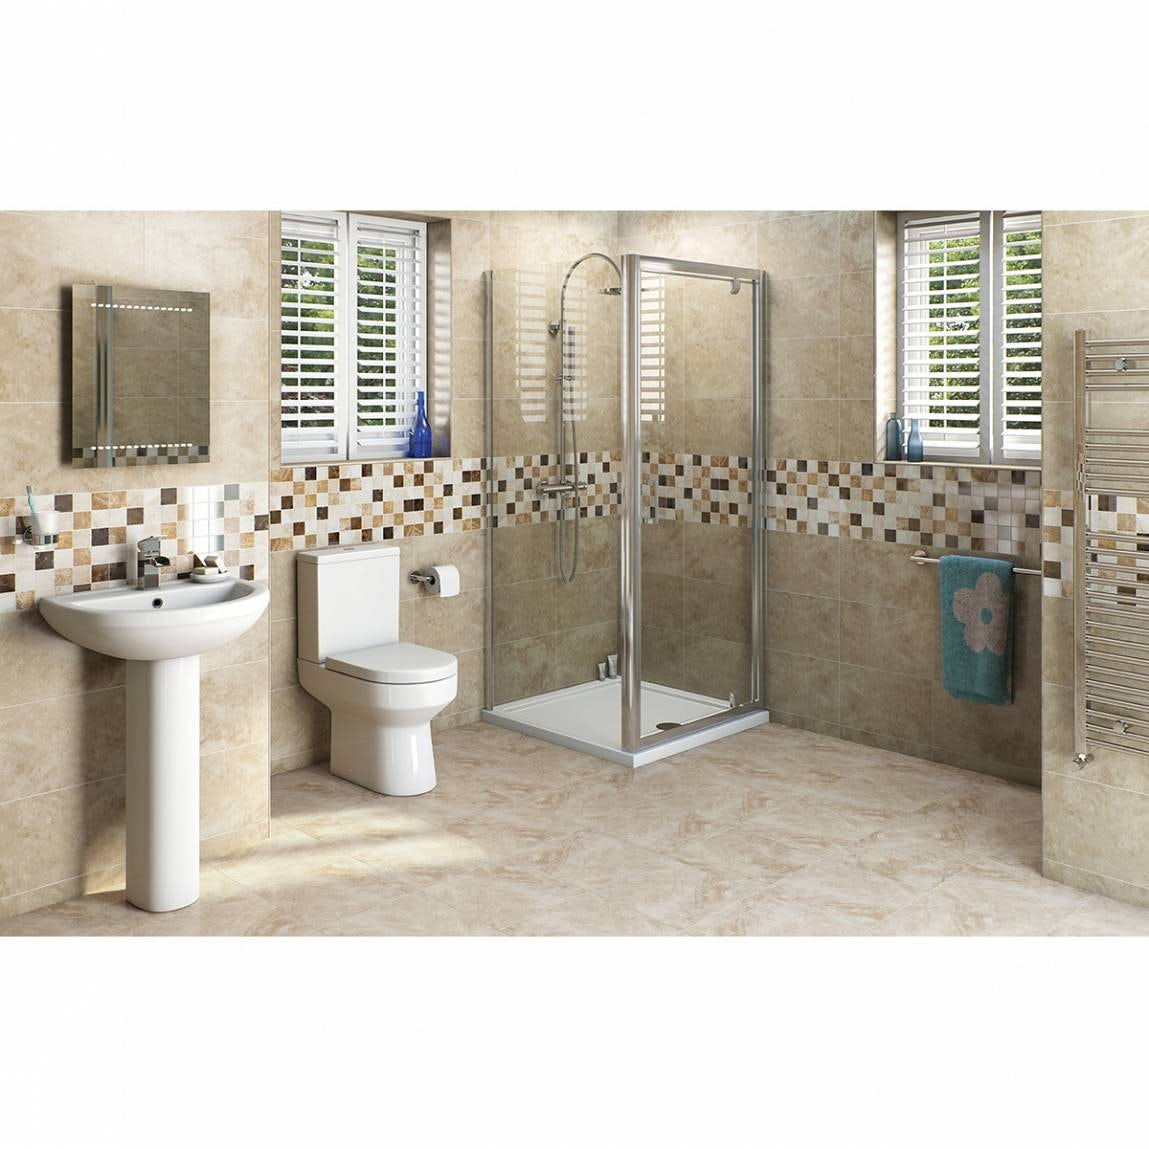 OrchardWharfebathroom suite with square enclosure and tray